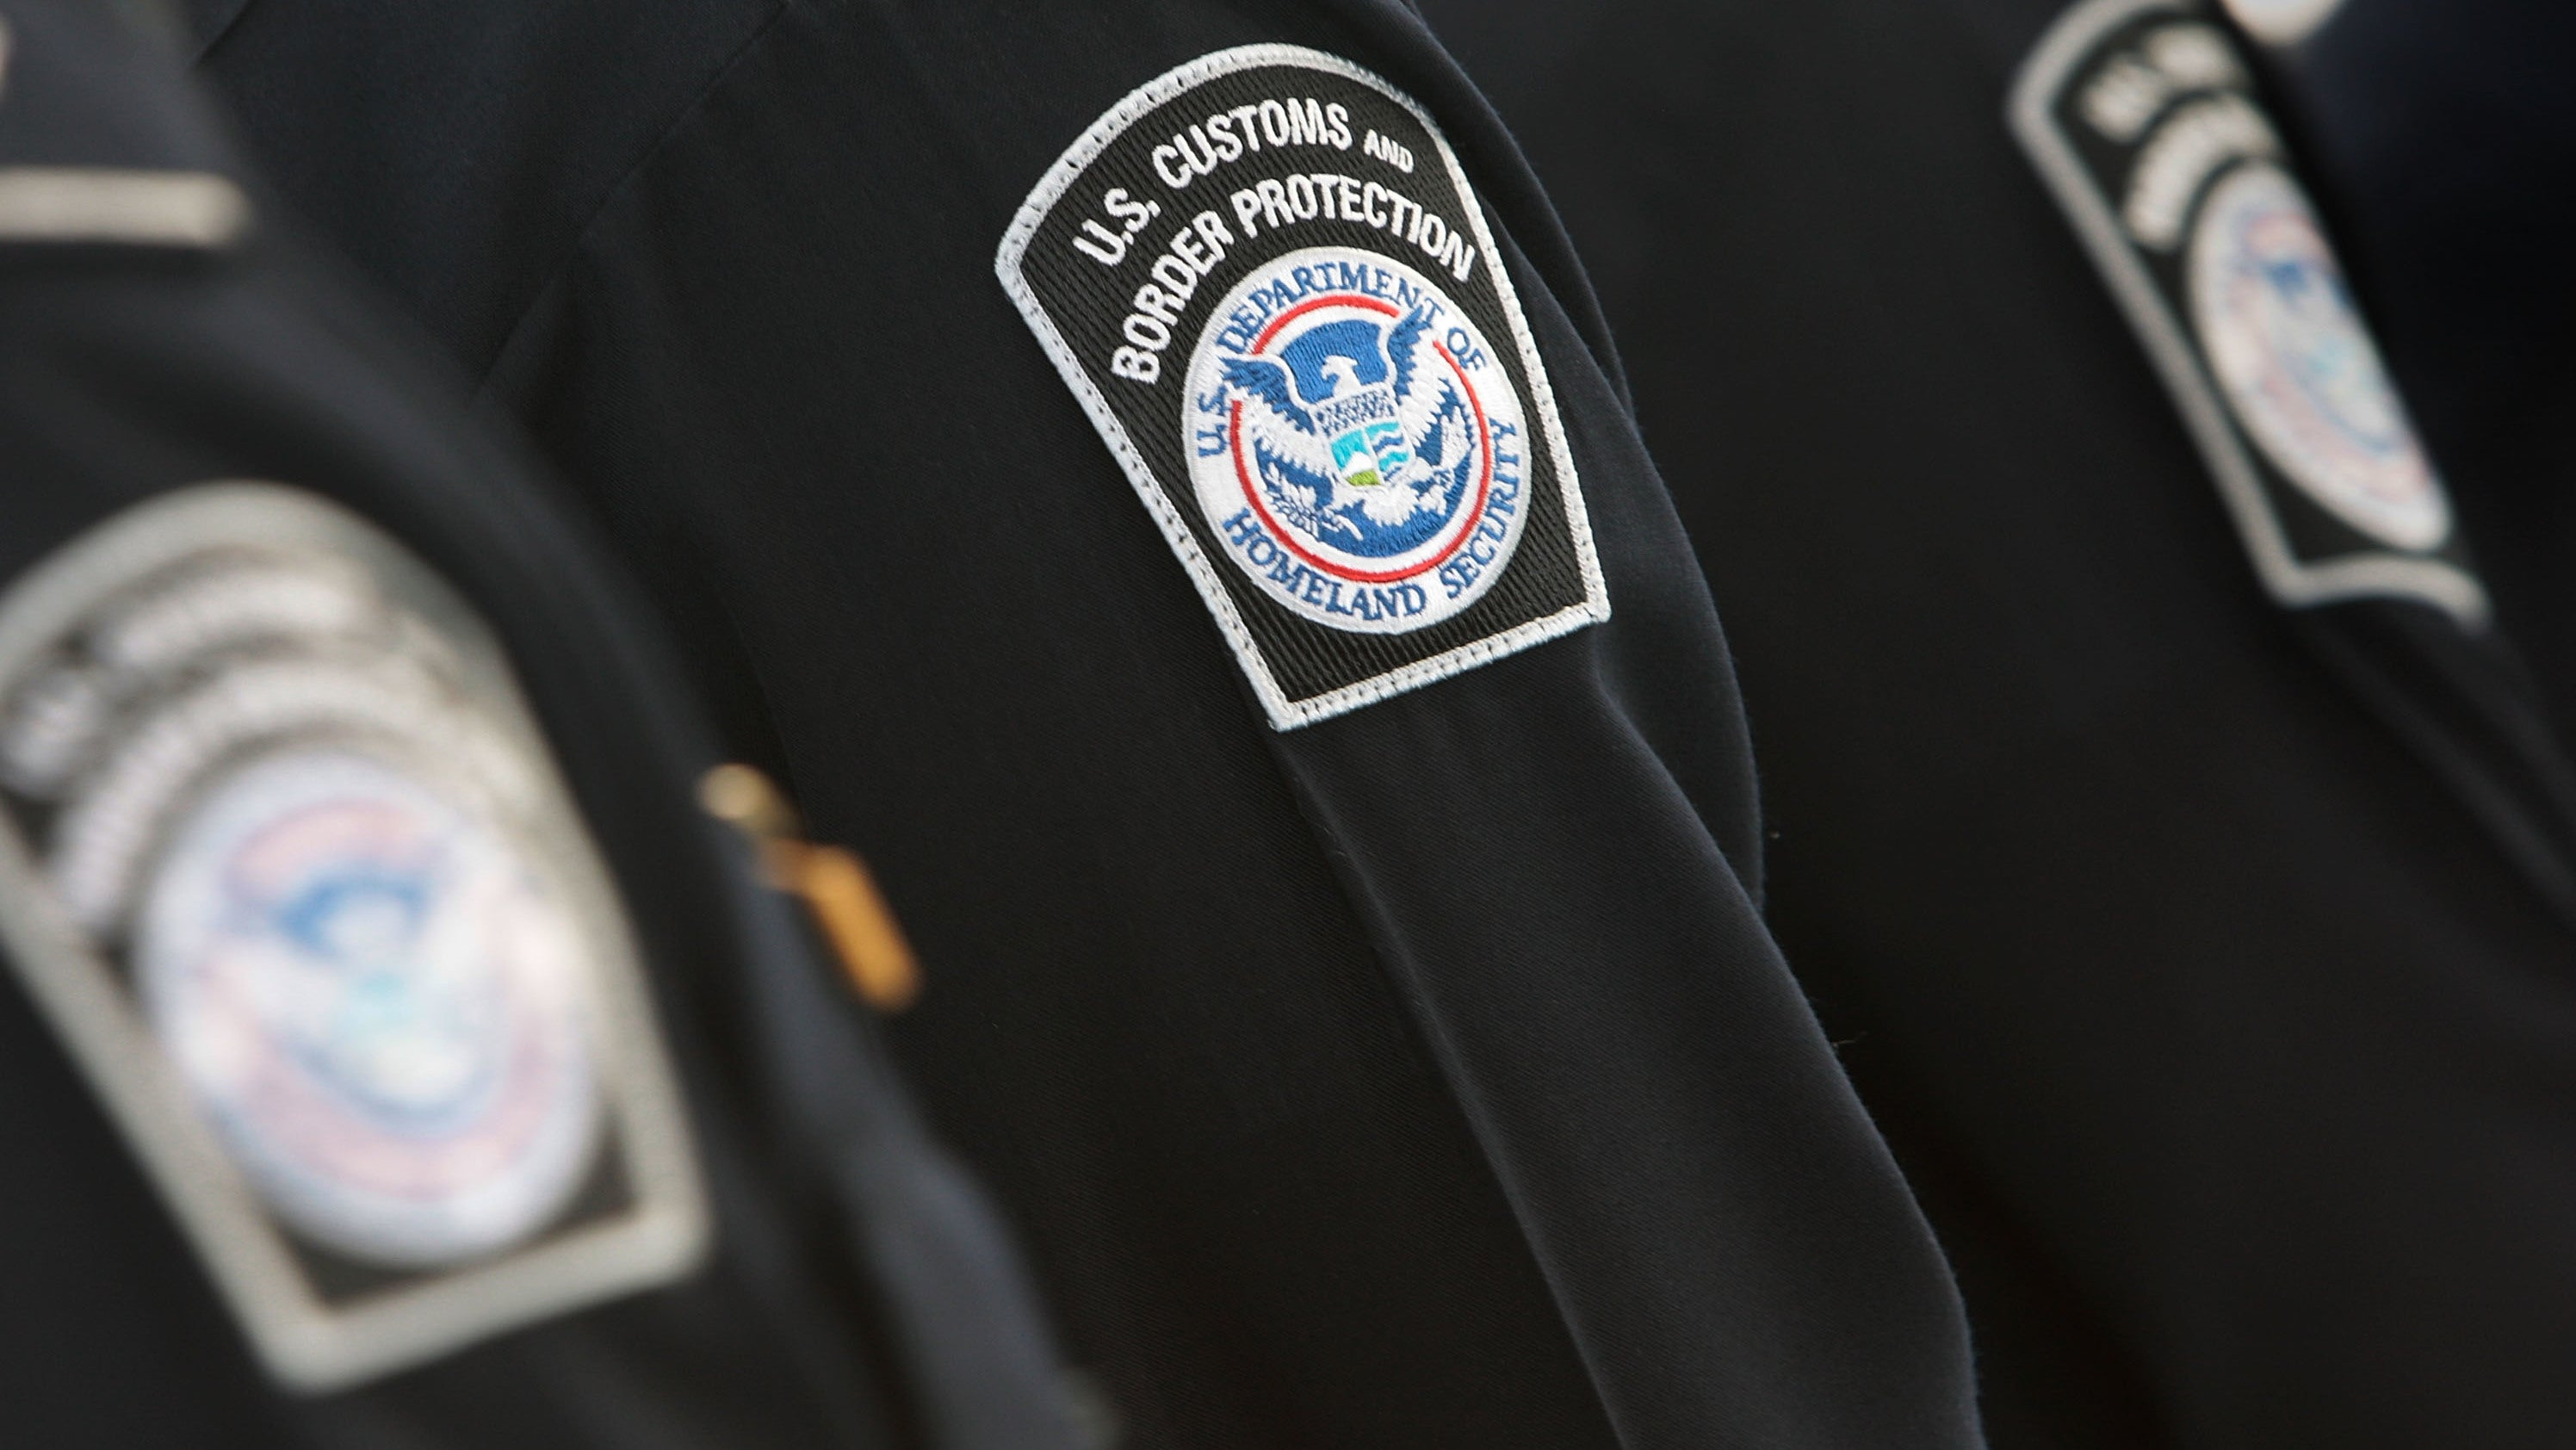 Woman Sues US Border Agents To Make Them Return Data They Seized From Her Phone